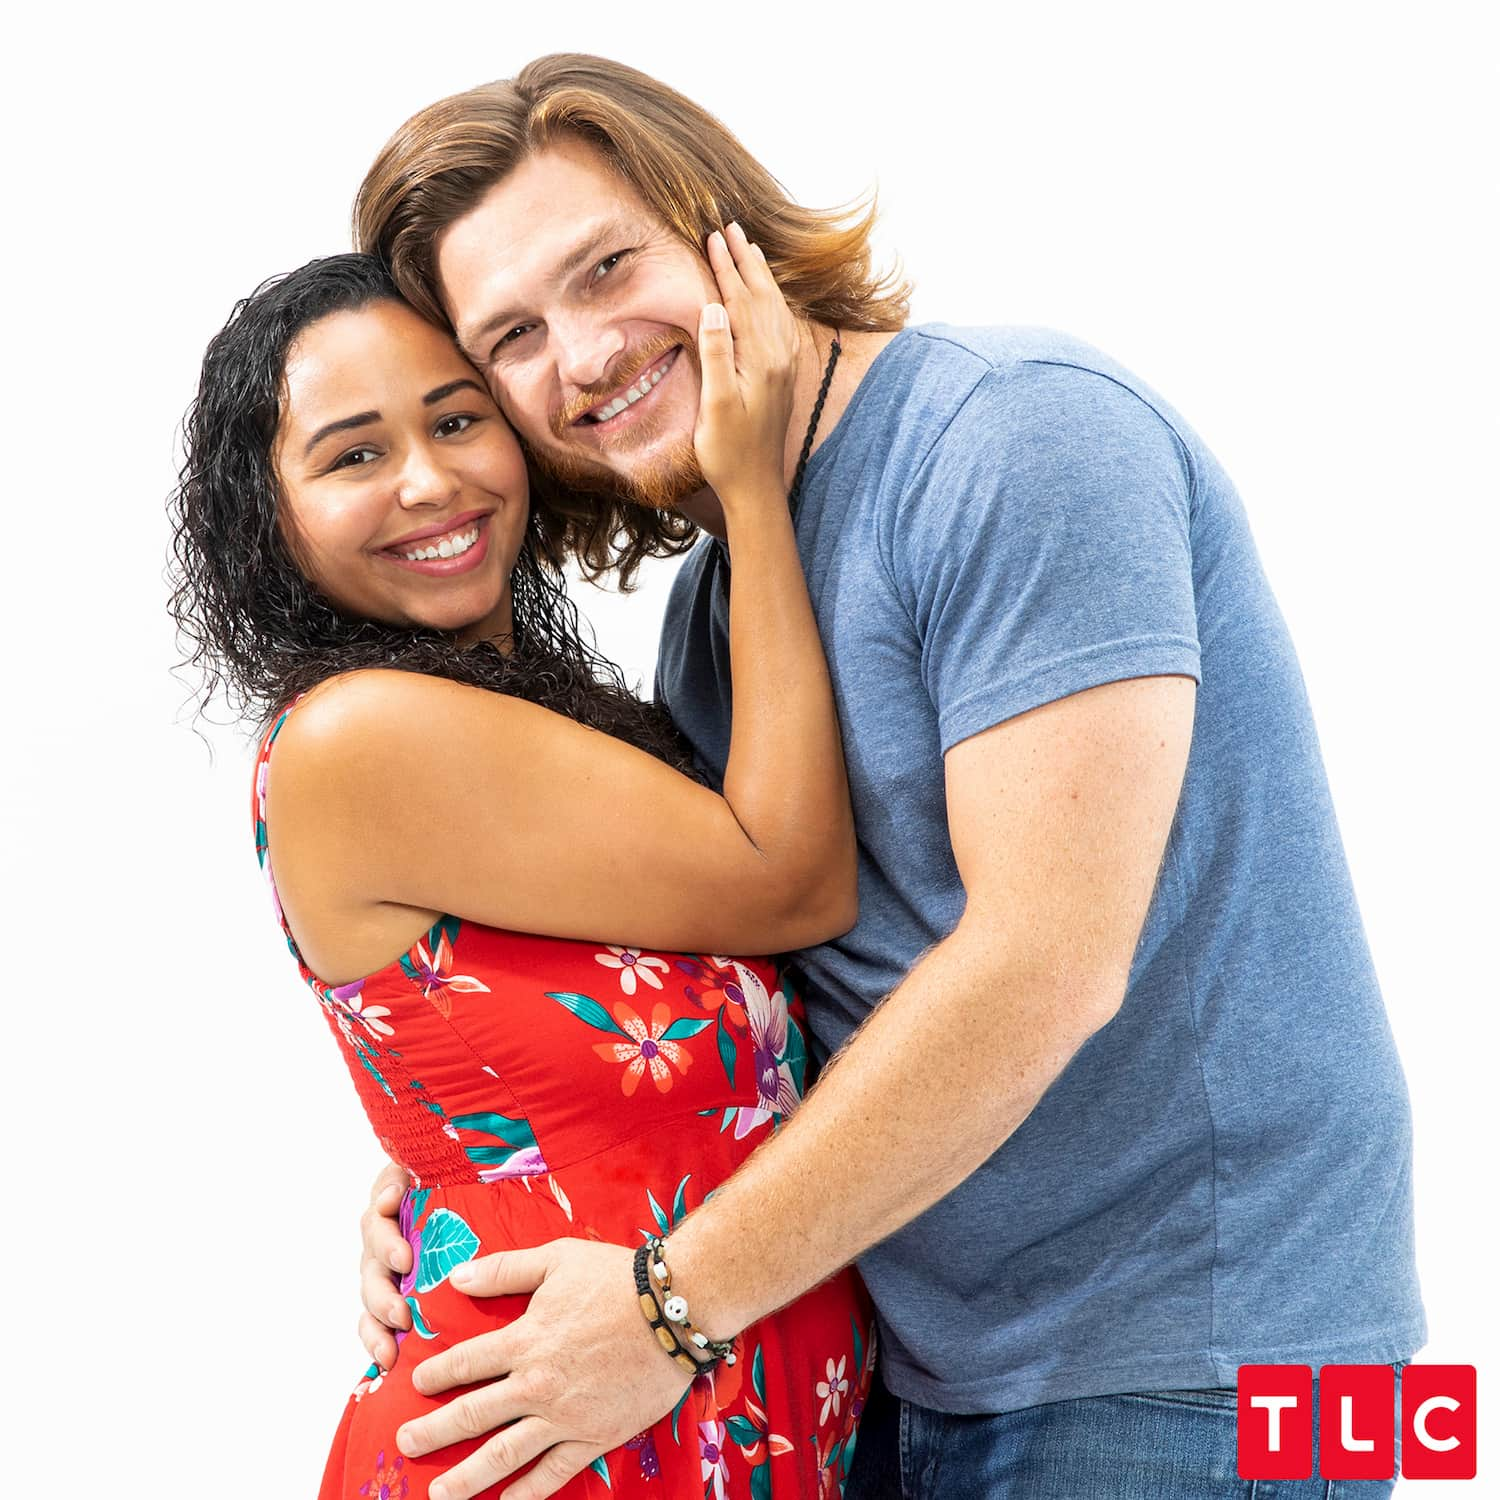 image from 90 Day Fiancé